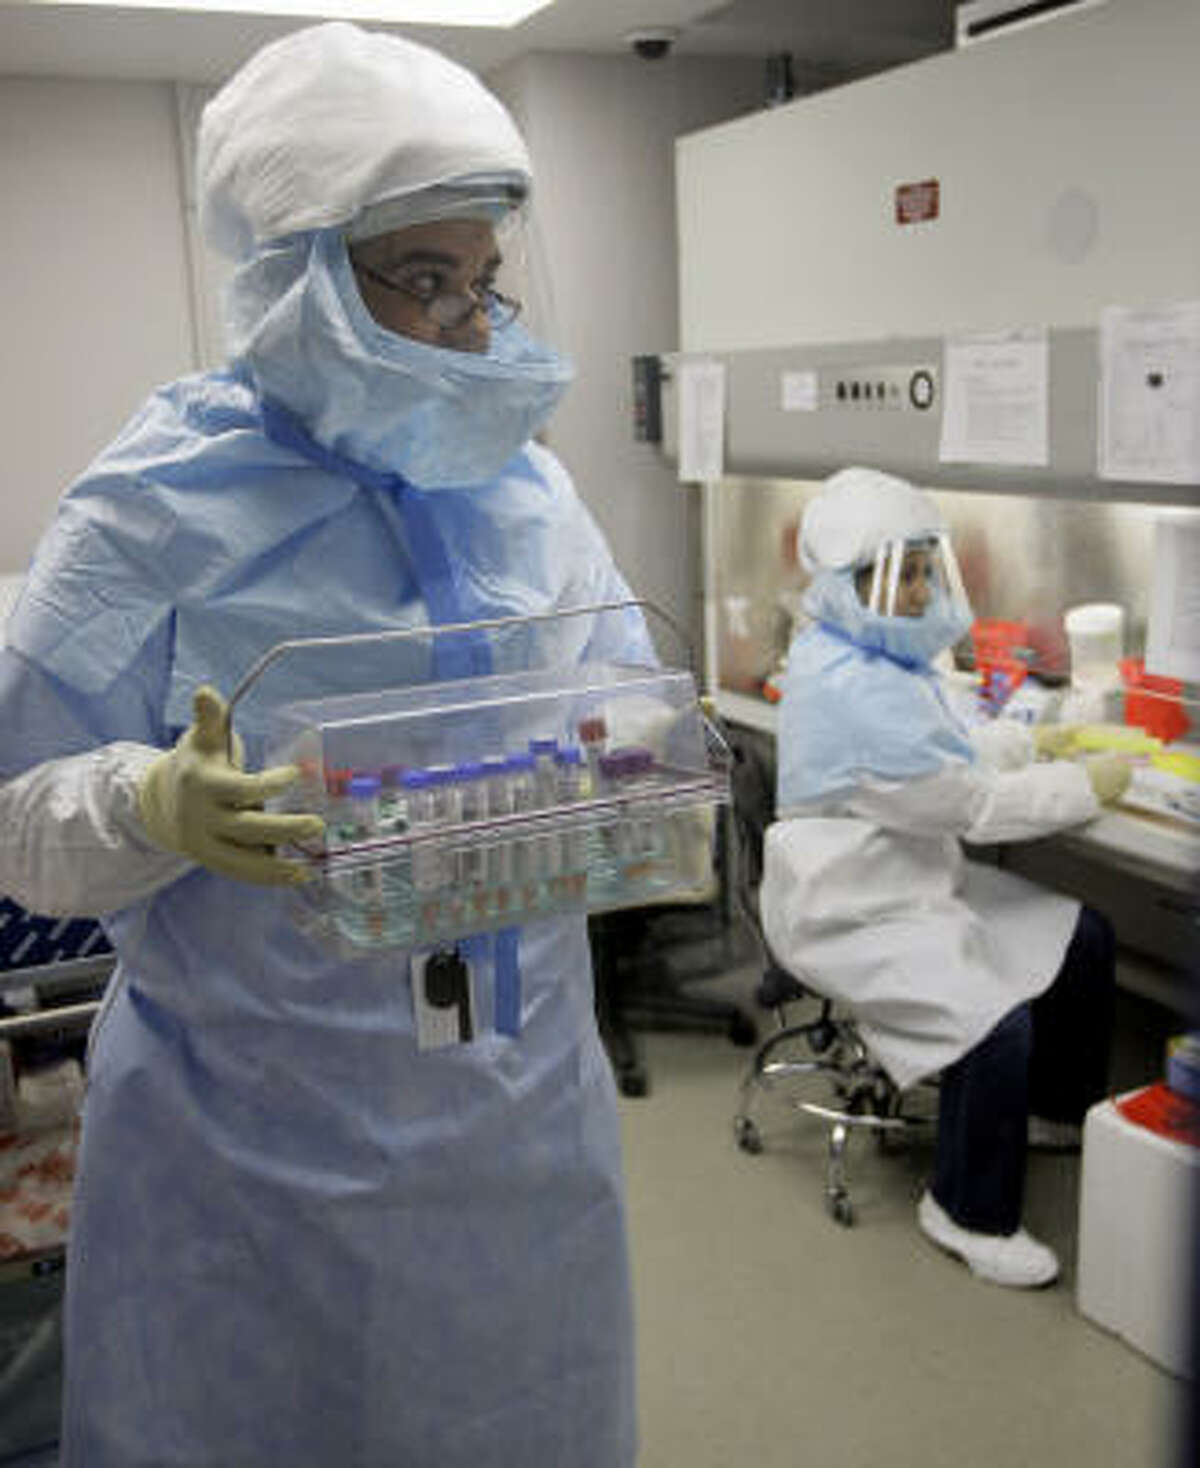 Microbiologist Gilbert Ortiz, left, handles samples while testing for swine flu along with lead scientist Lupe Garbalena, right, at the Houston Department of Health and Human Services.